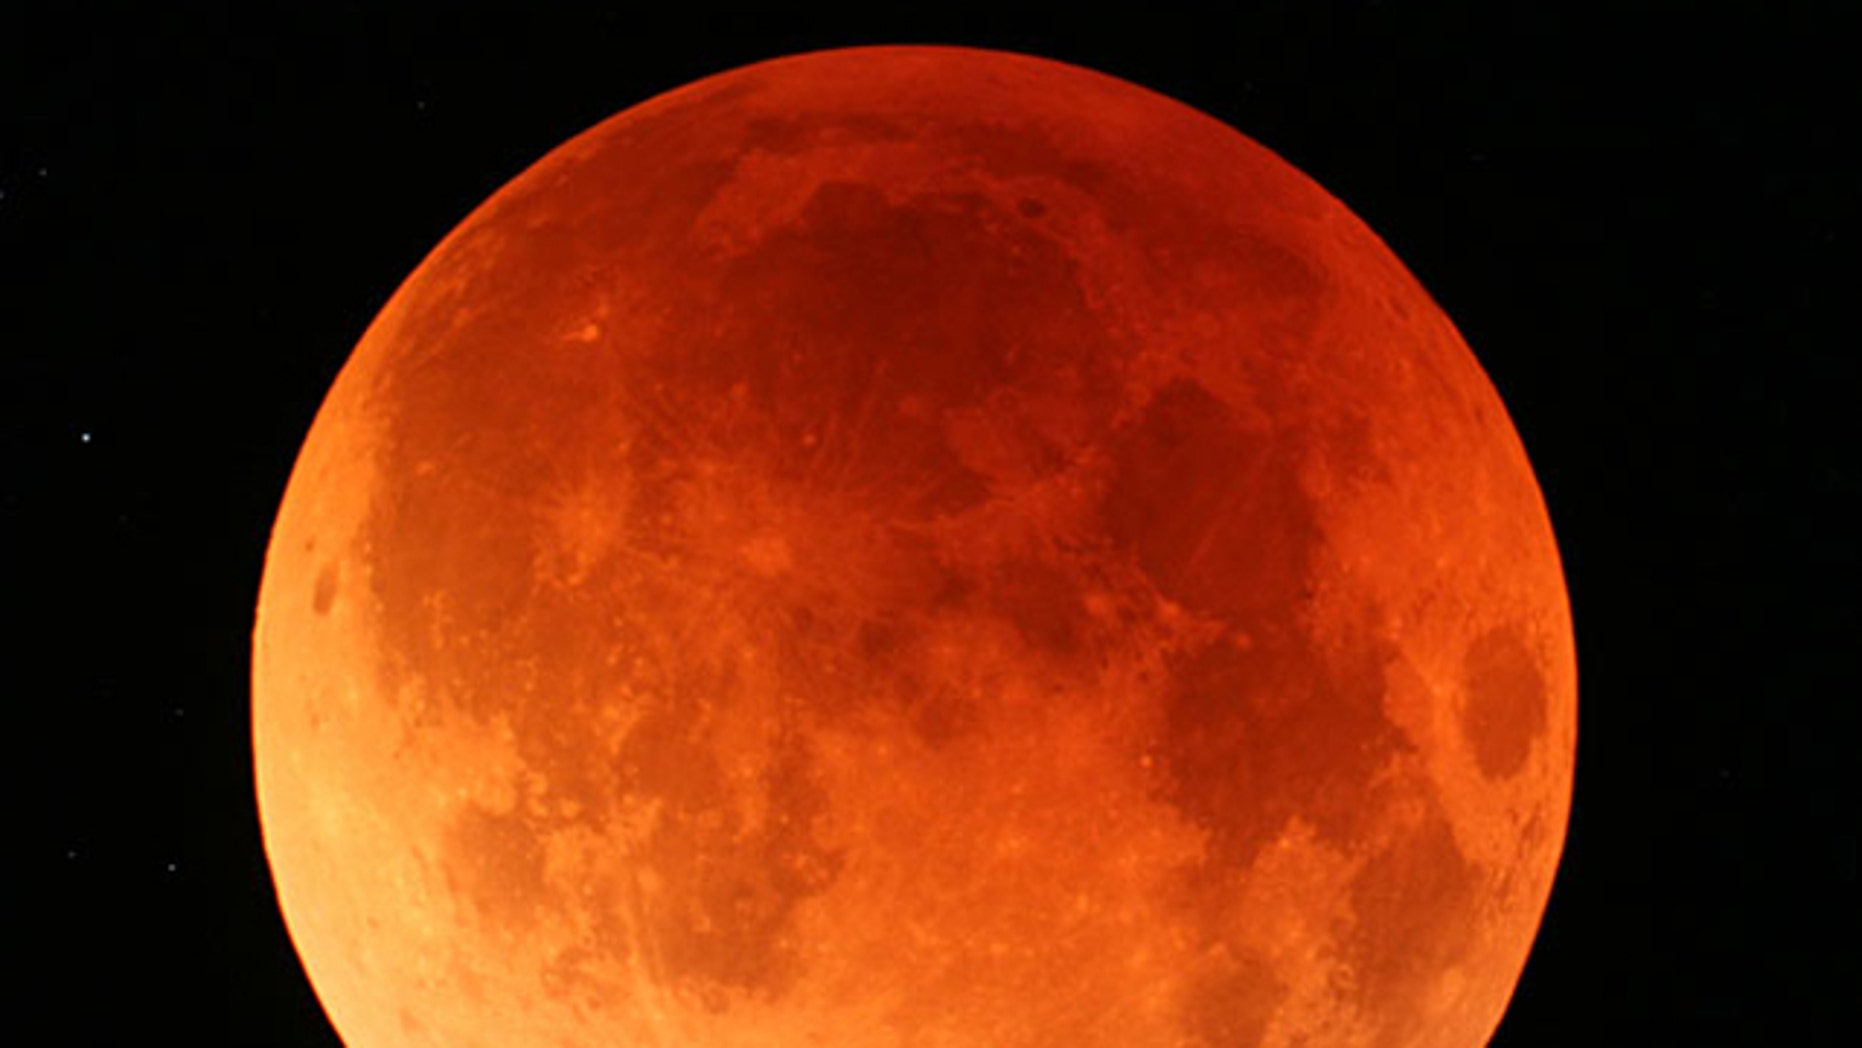 A view of the lunar eclipse from Japan's northernmost main island of Hokkaido on Aug. 28, 2007. The Earth's shadow crept across the moon's surface slowly eclipsing it and turning it to shades of orange and red during second total lunar eclipse this year.